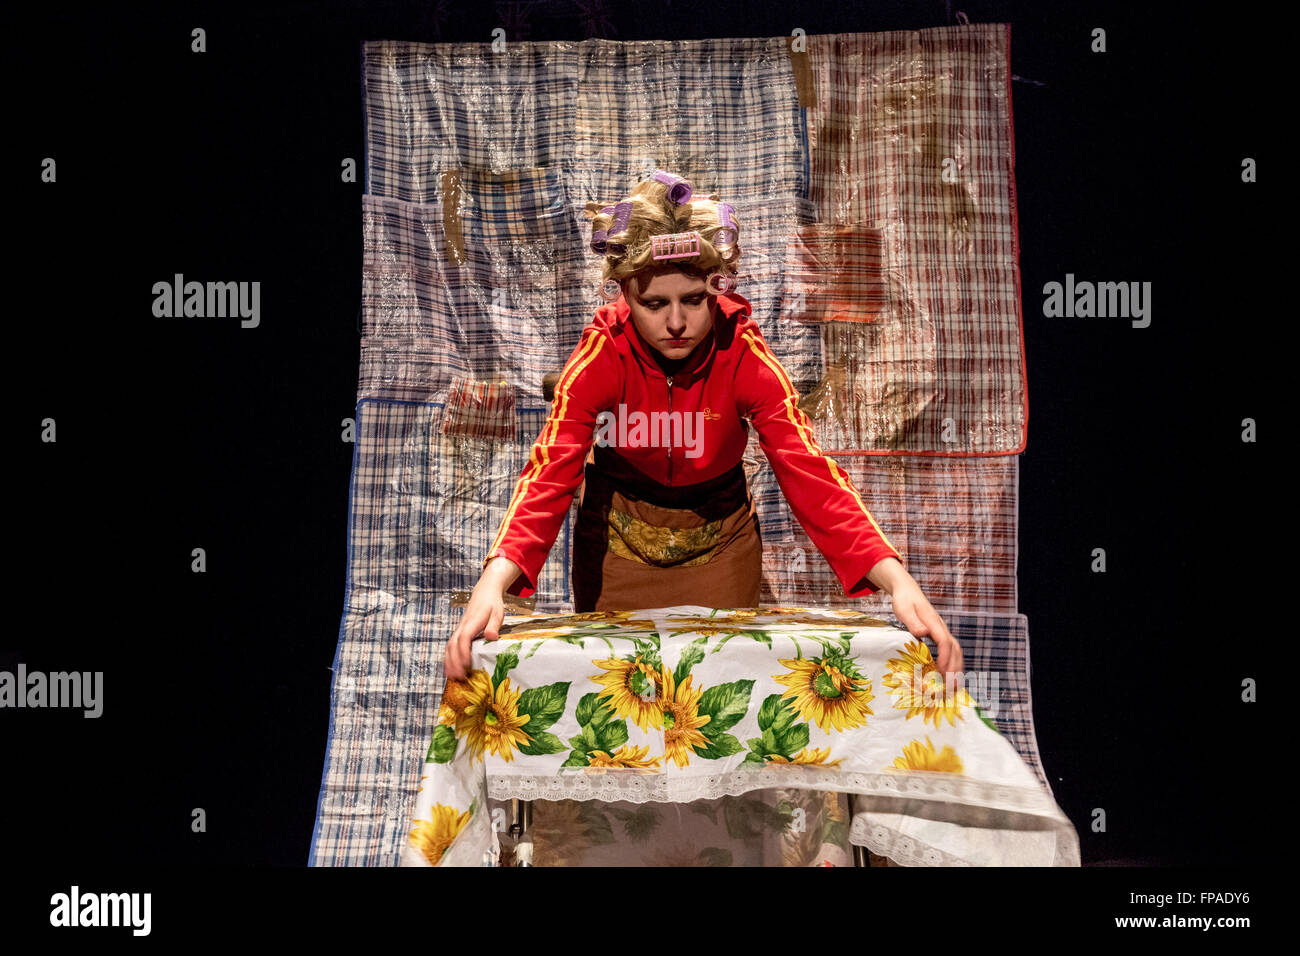 London, UK. 18th March, 2016. 'Eastern European For Dummies' migrant satire play performed at Rich Mix by There Stock Photo